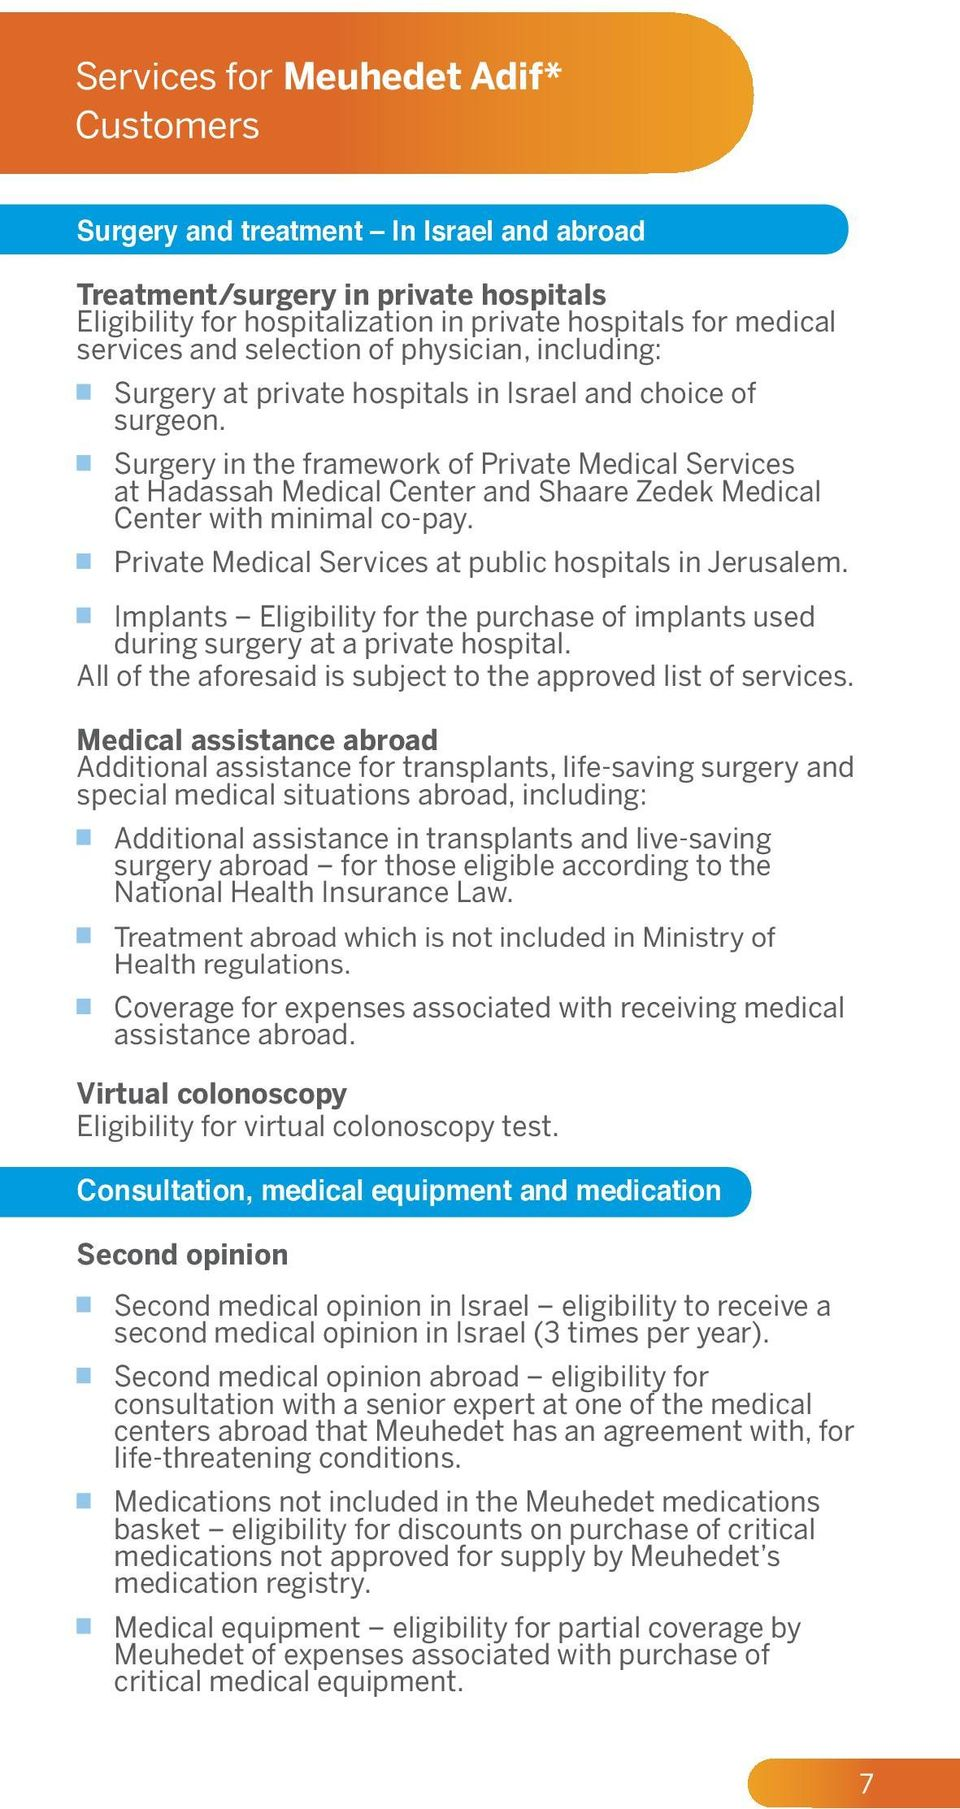 Meuhedet Adif s cost-effective supplementary health insurance